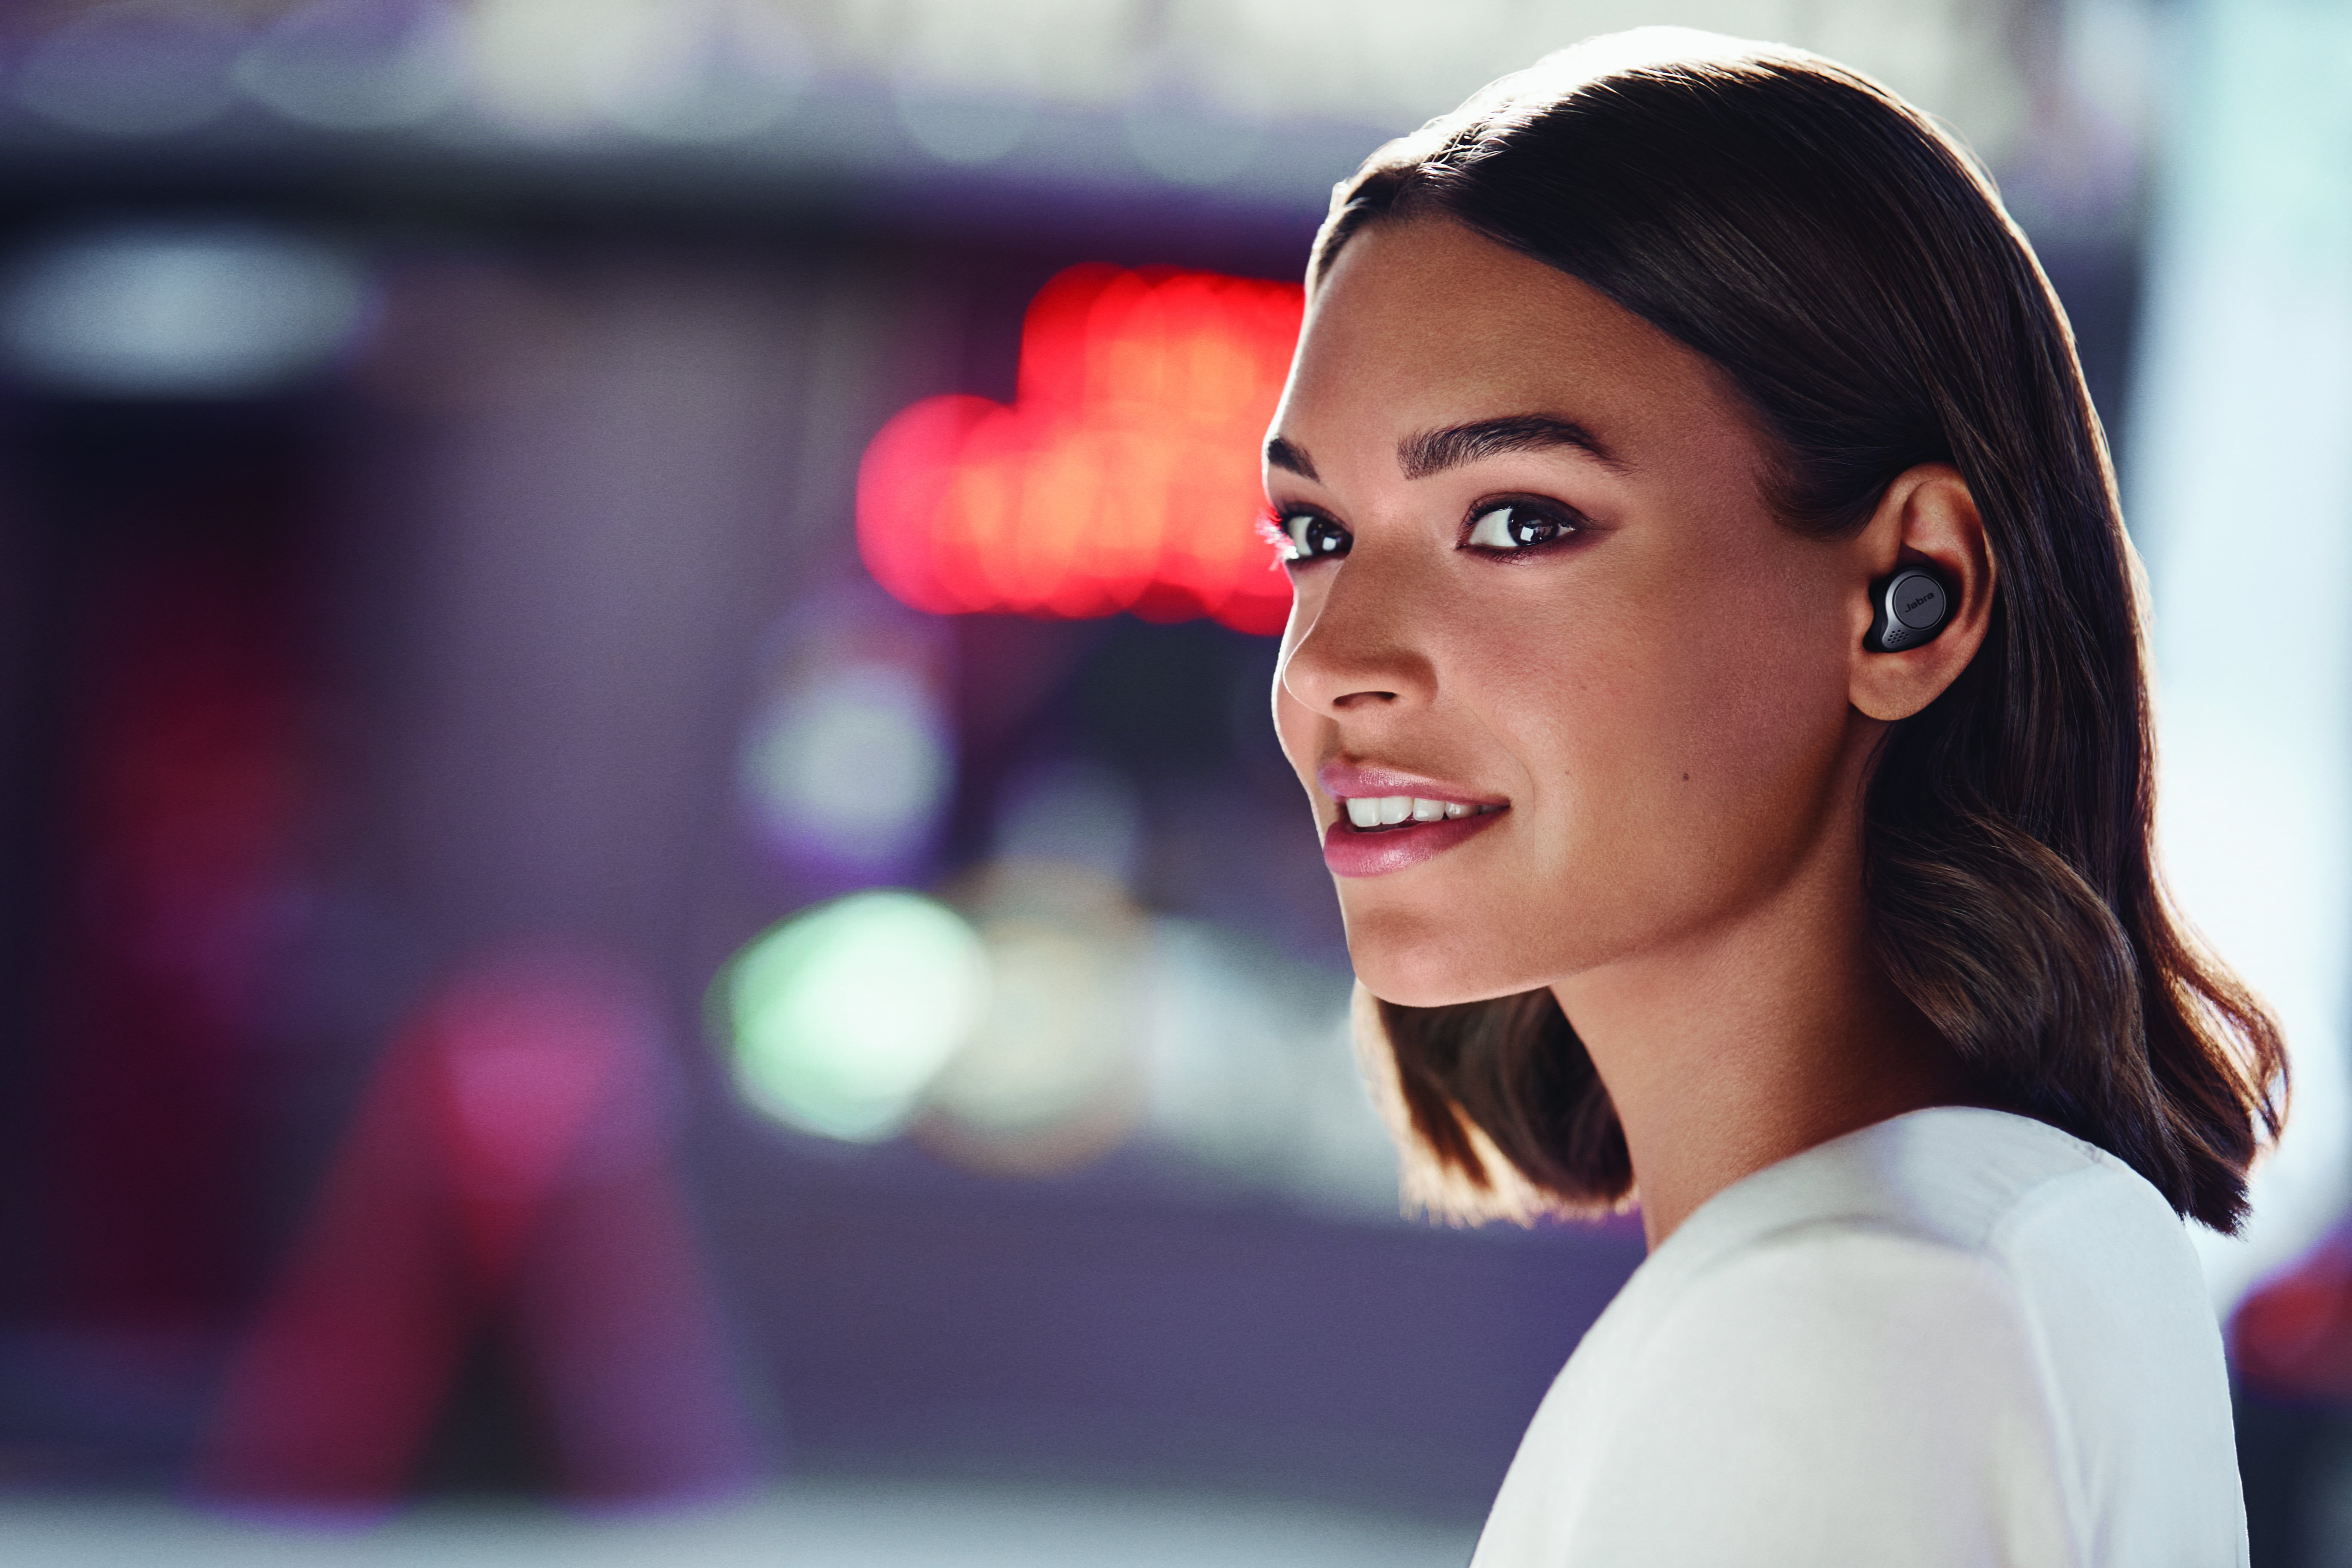 Jabra Elite 75t Secure Fitting True Wireless Earbuds With Up To 28 Hours Of Battery Life Justrunlah